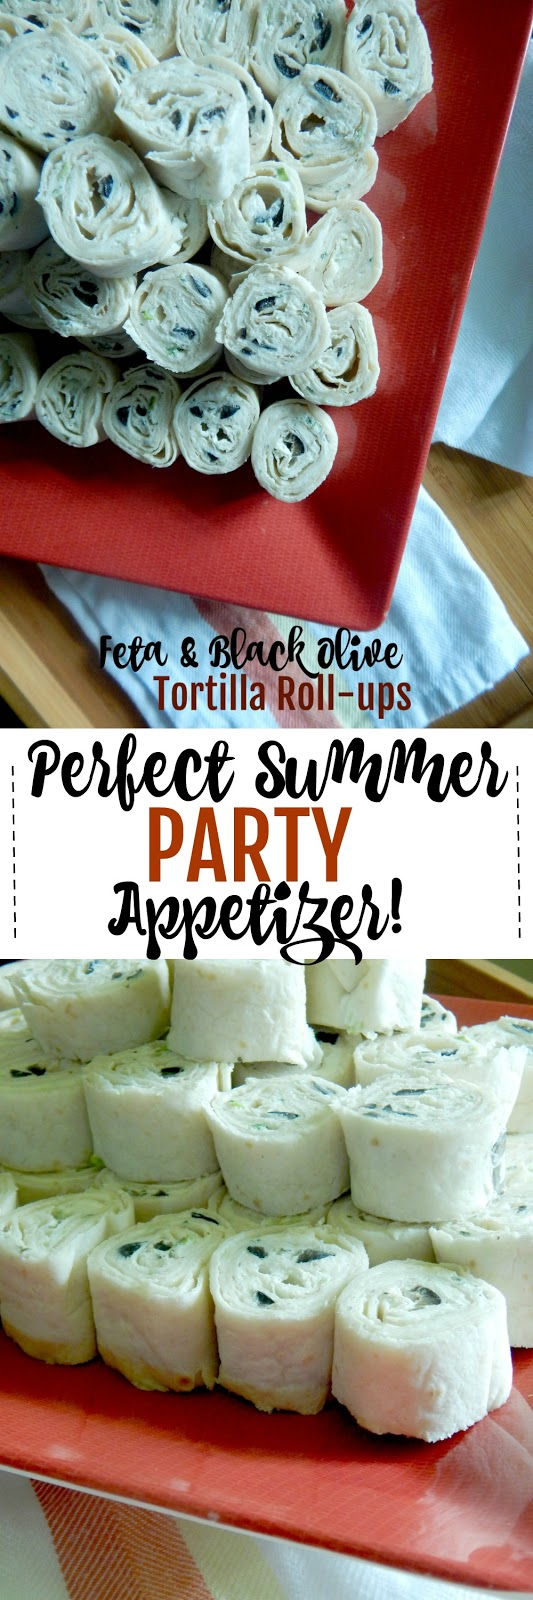 Feta and Black Olive Tortilla Roll-ups...an appetizer and party hit!  Tangy, creamy, cheesy and full of flavor.  Bet you can't eat just one! (sweetandsavoryfood.com)